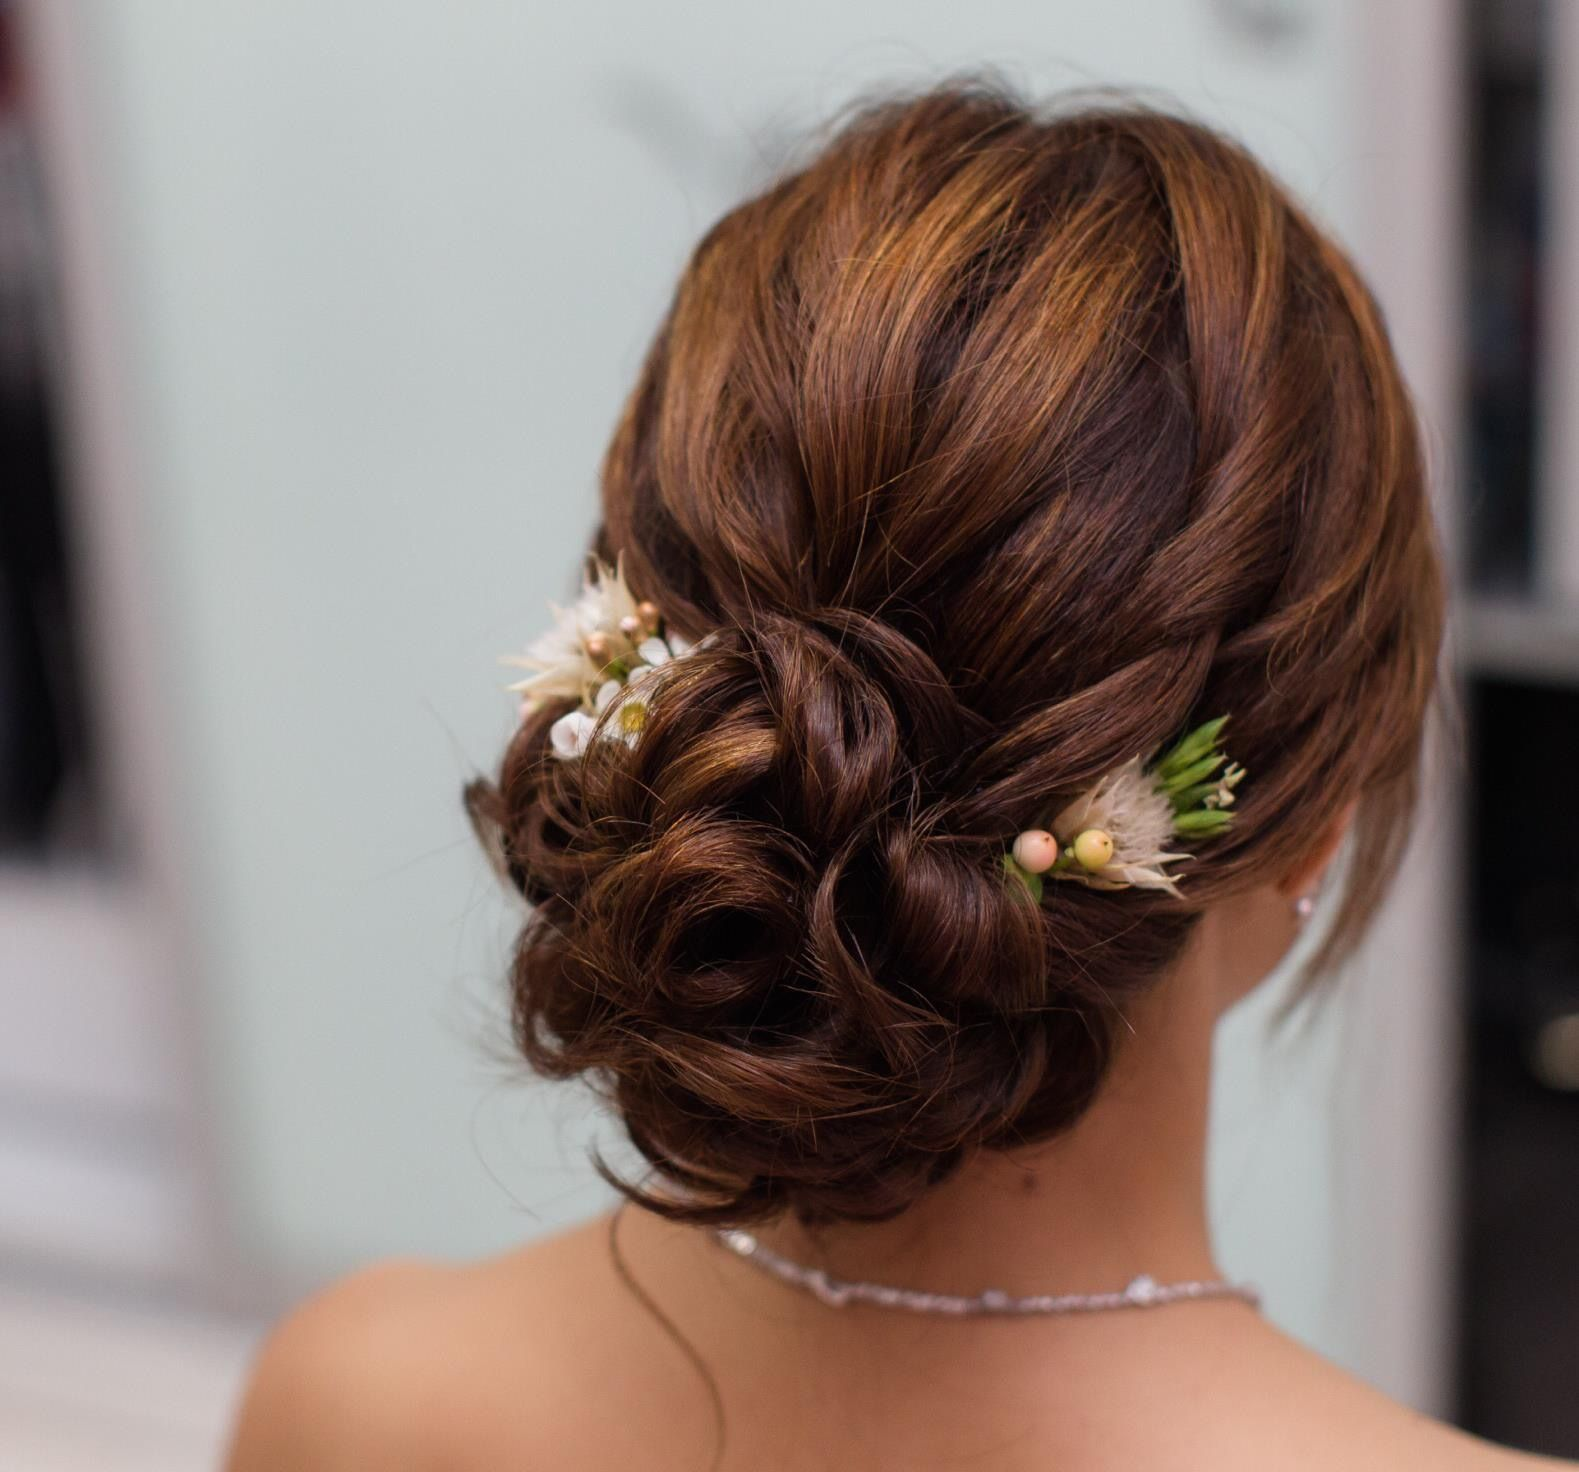 Pin by Christine Chia on Hairstyles to try   Pinterest ...